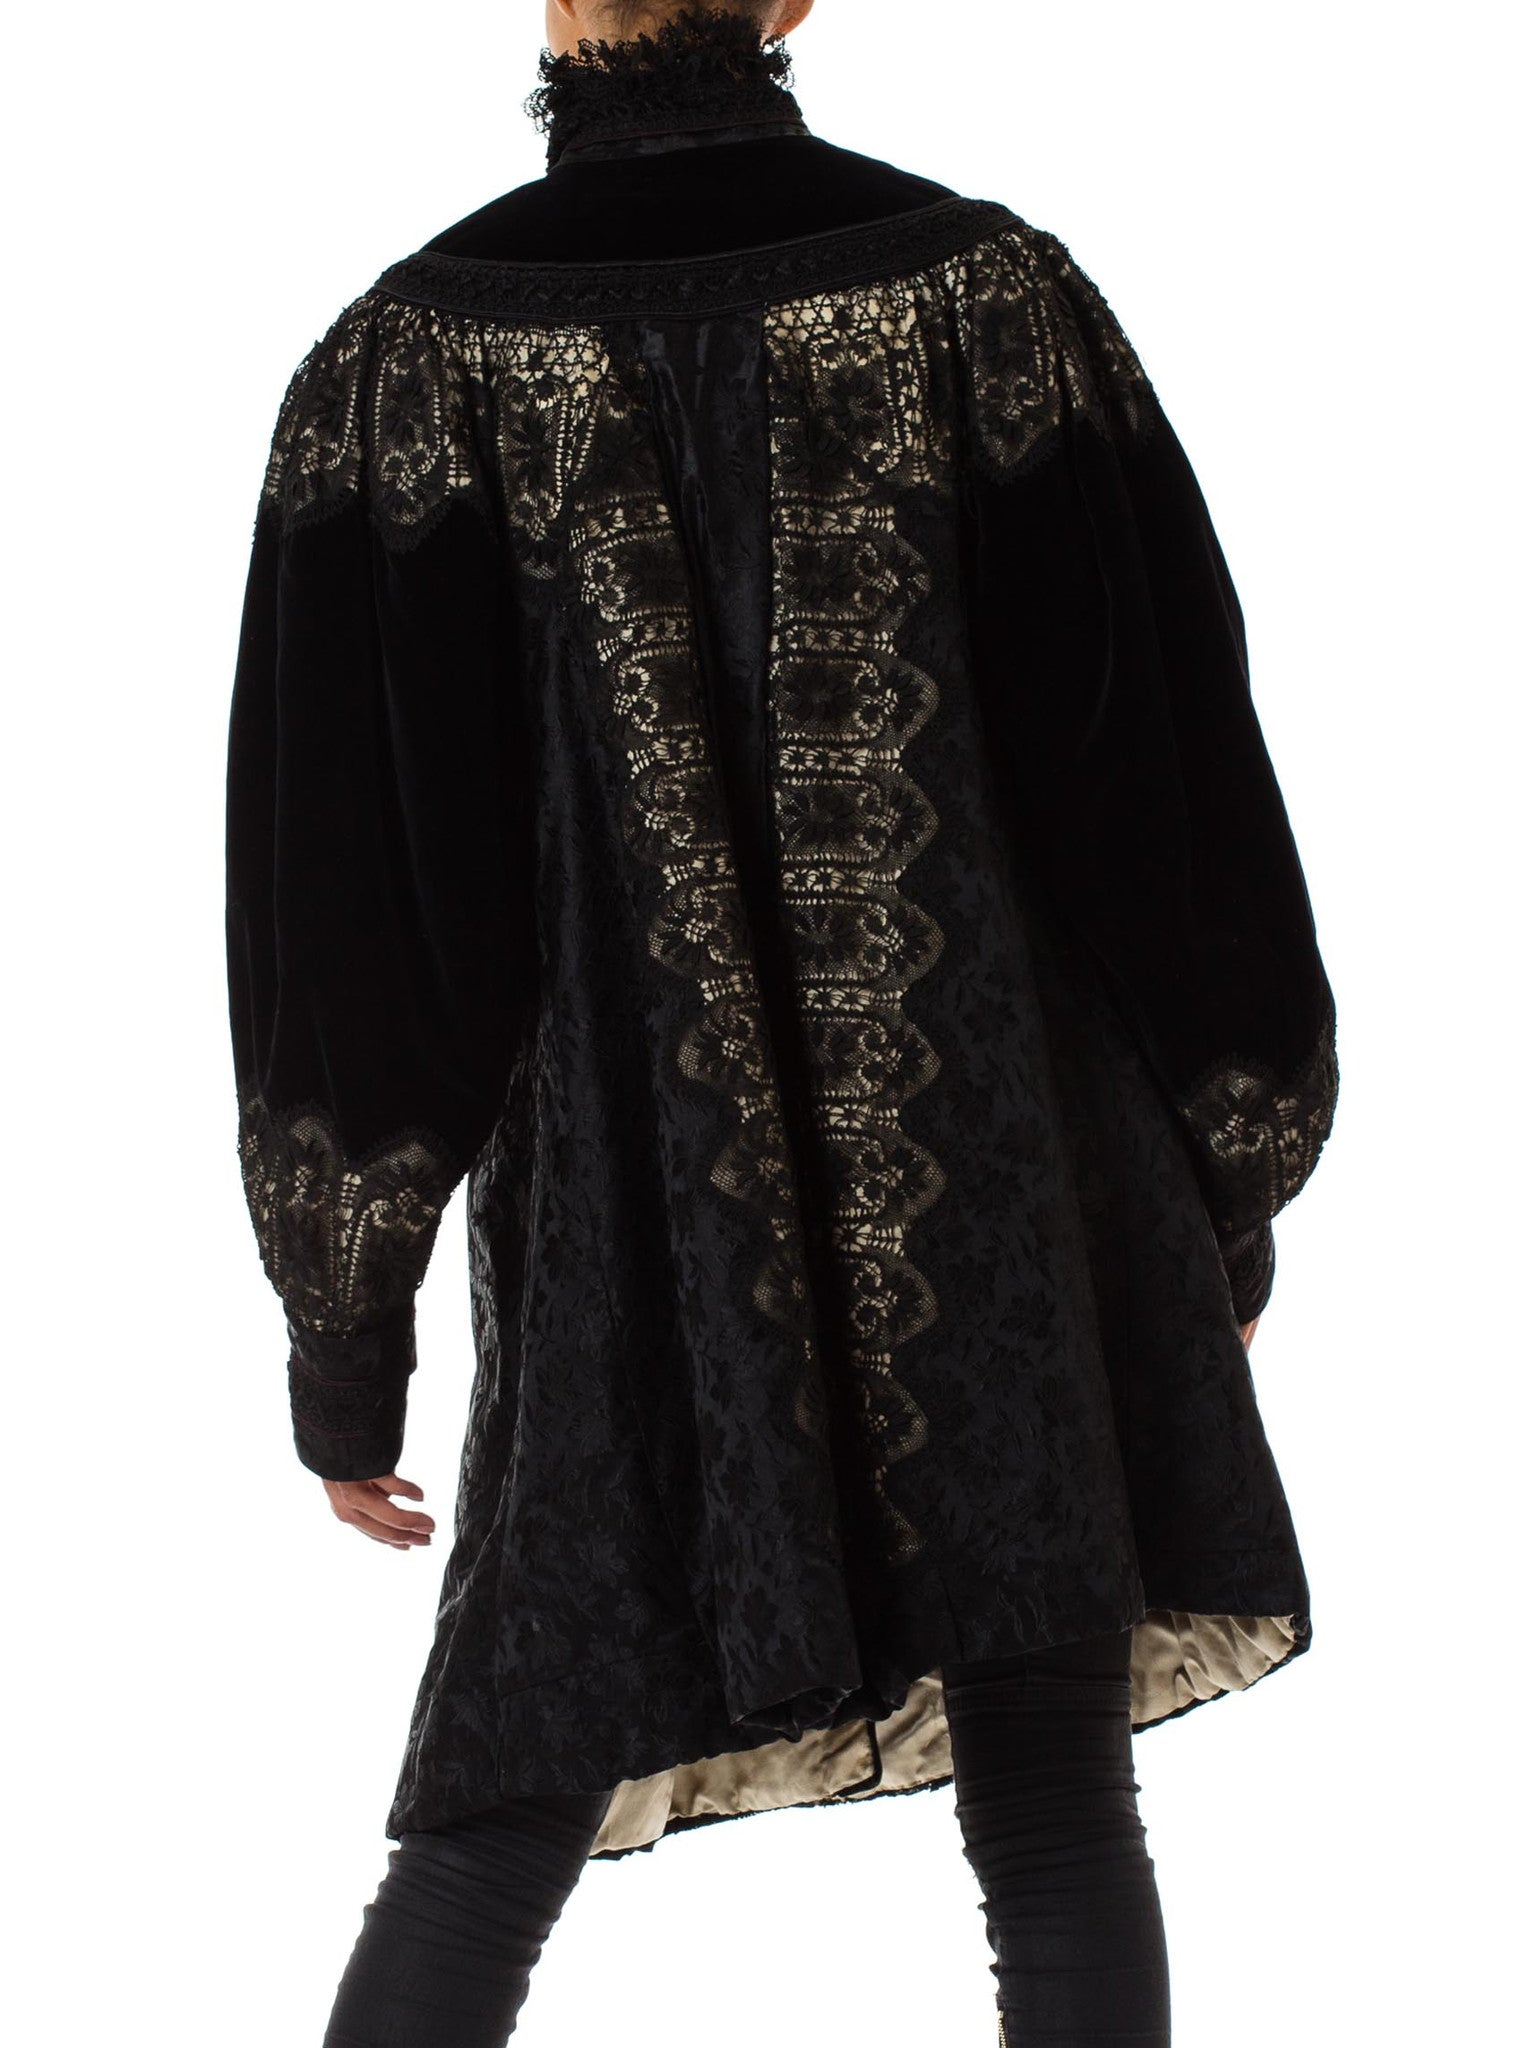 Victorian Black & White Silk Damask With Velvet And Handmade Lace Belle Epoch Swing Coat From Paris